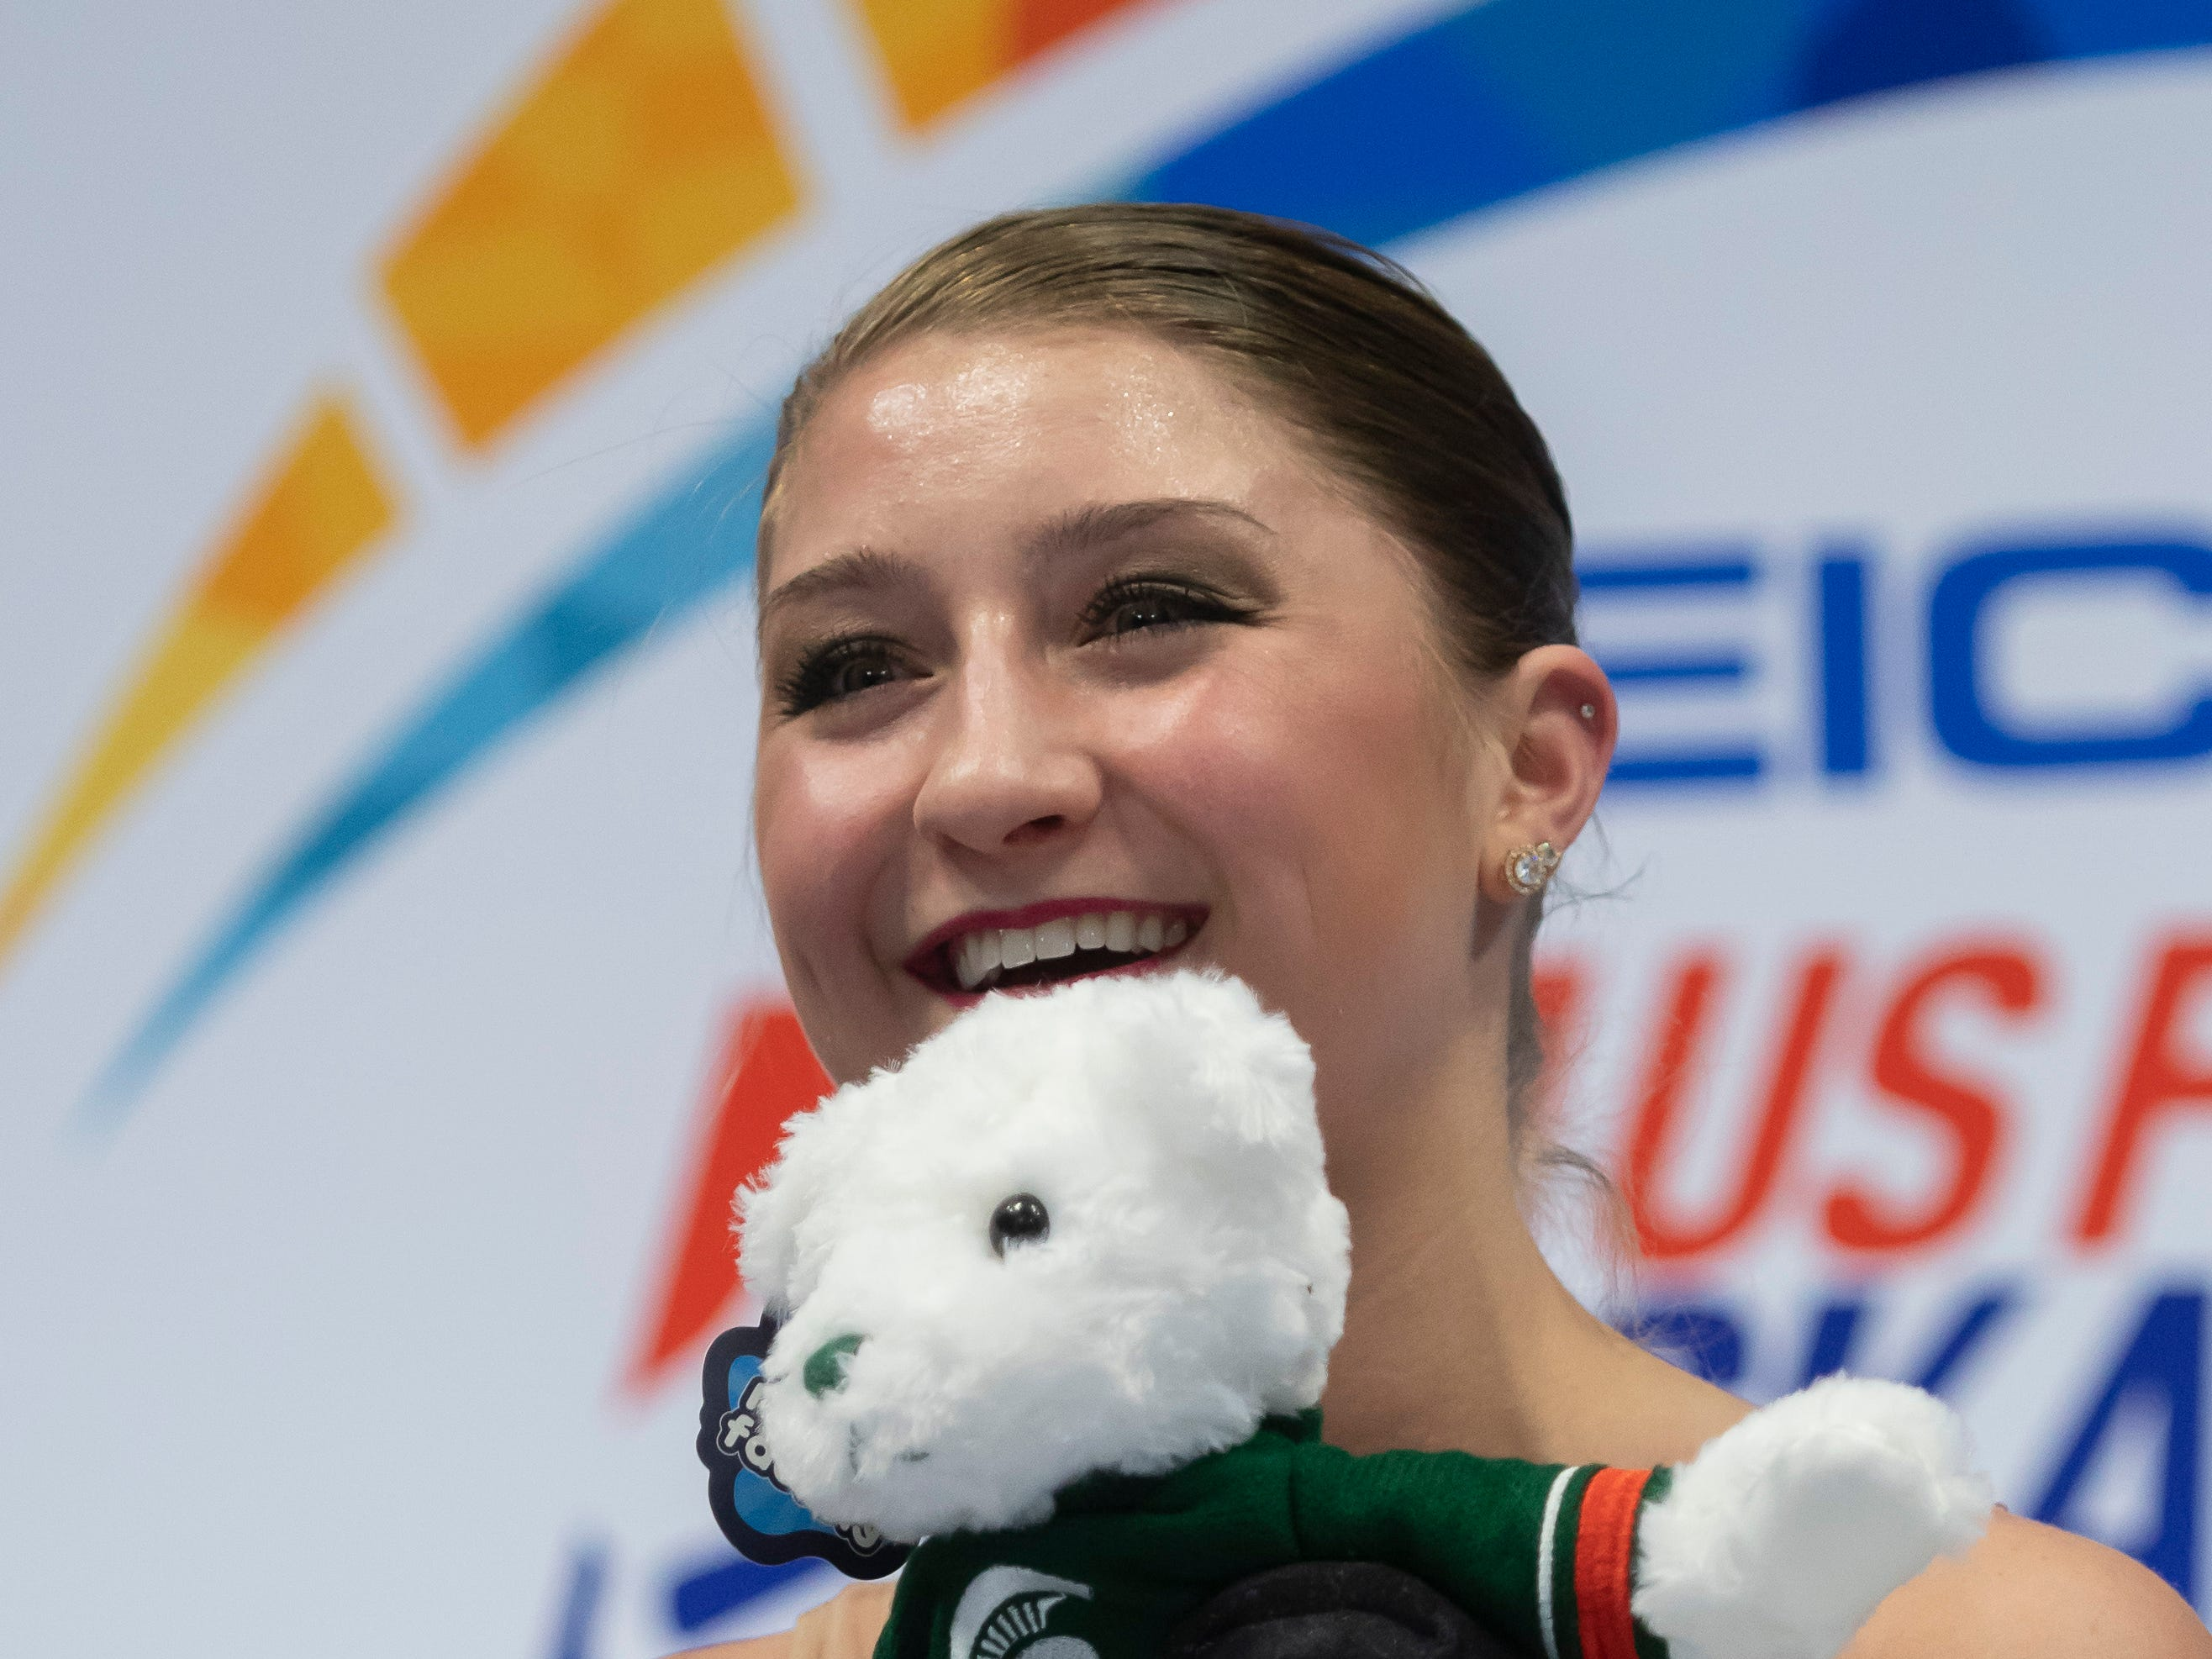 Hannah Miller, who has trained with the Lansing Skating Club, holds a Michigan State teddy bear after competing in the ladies short program.